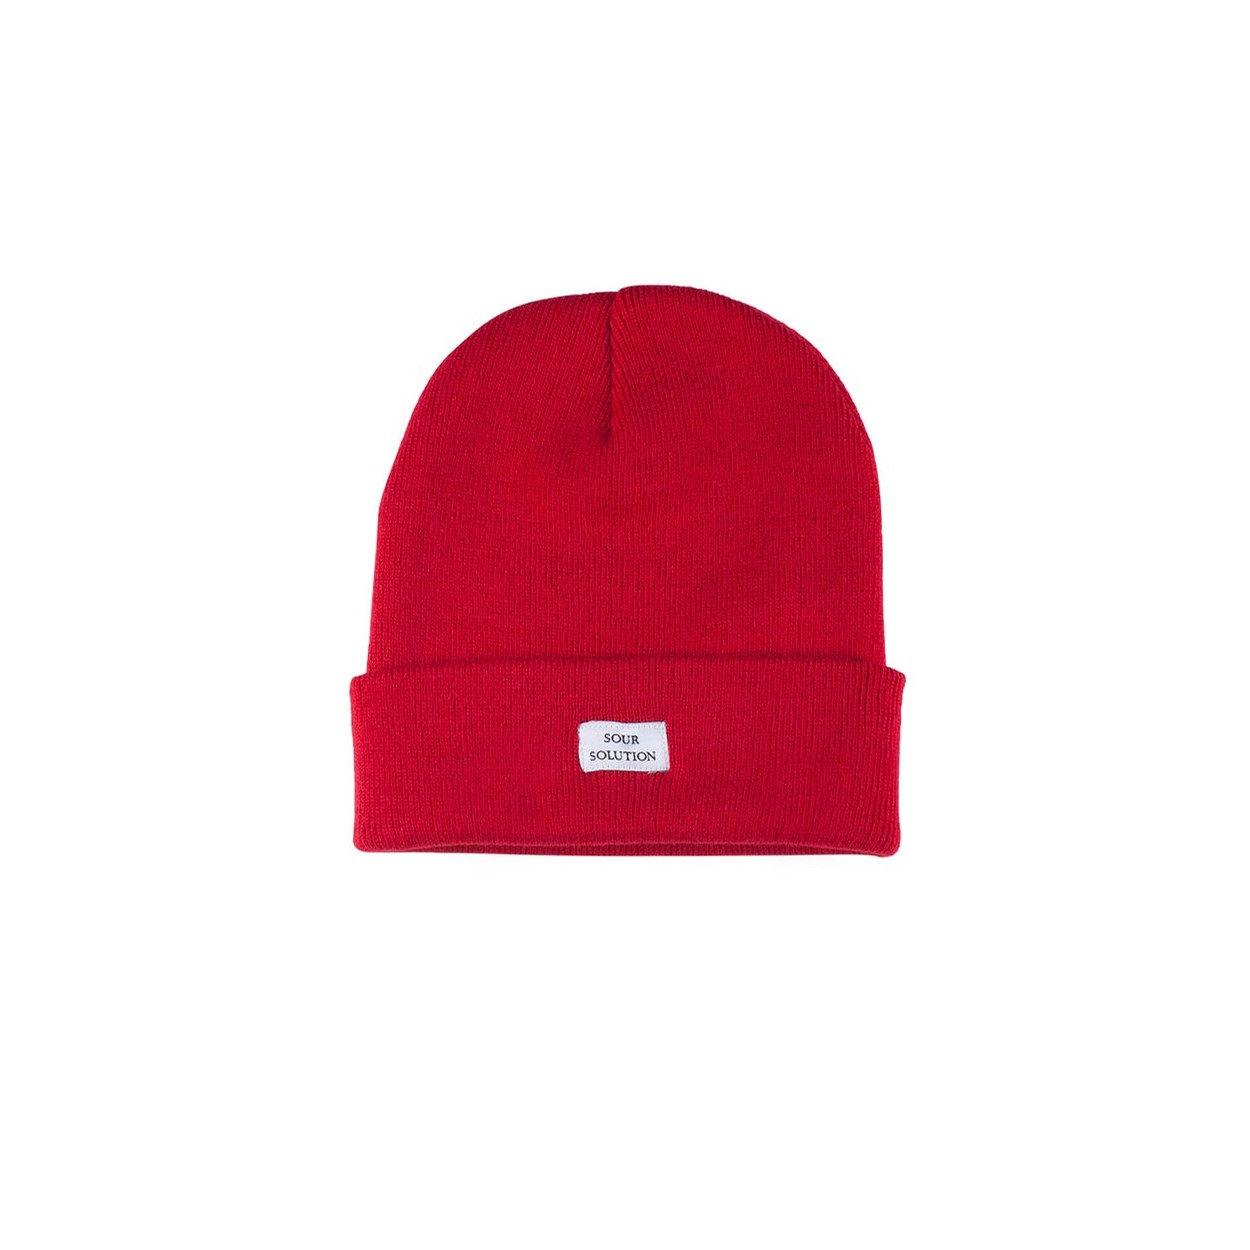 GM Beanie - Red